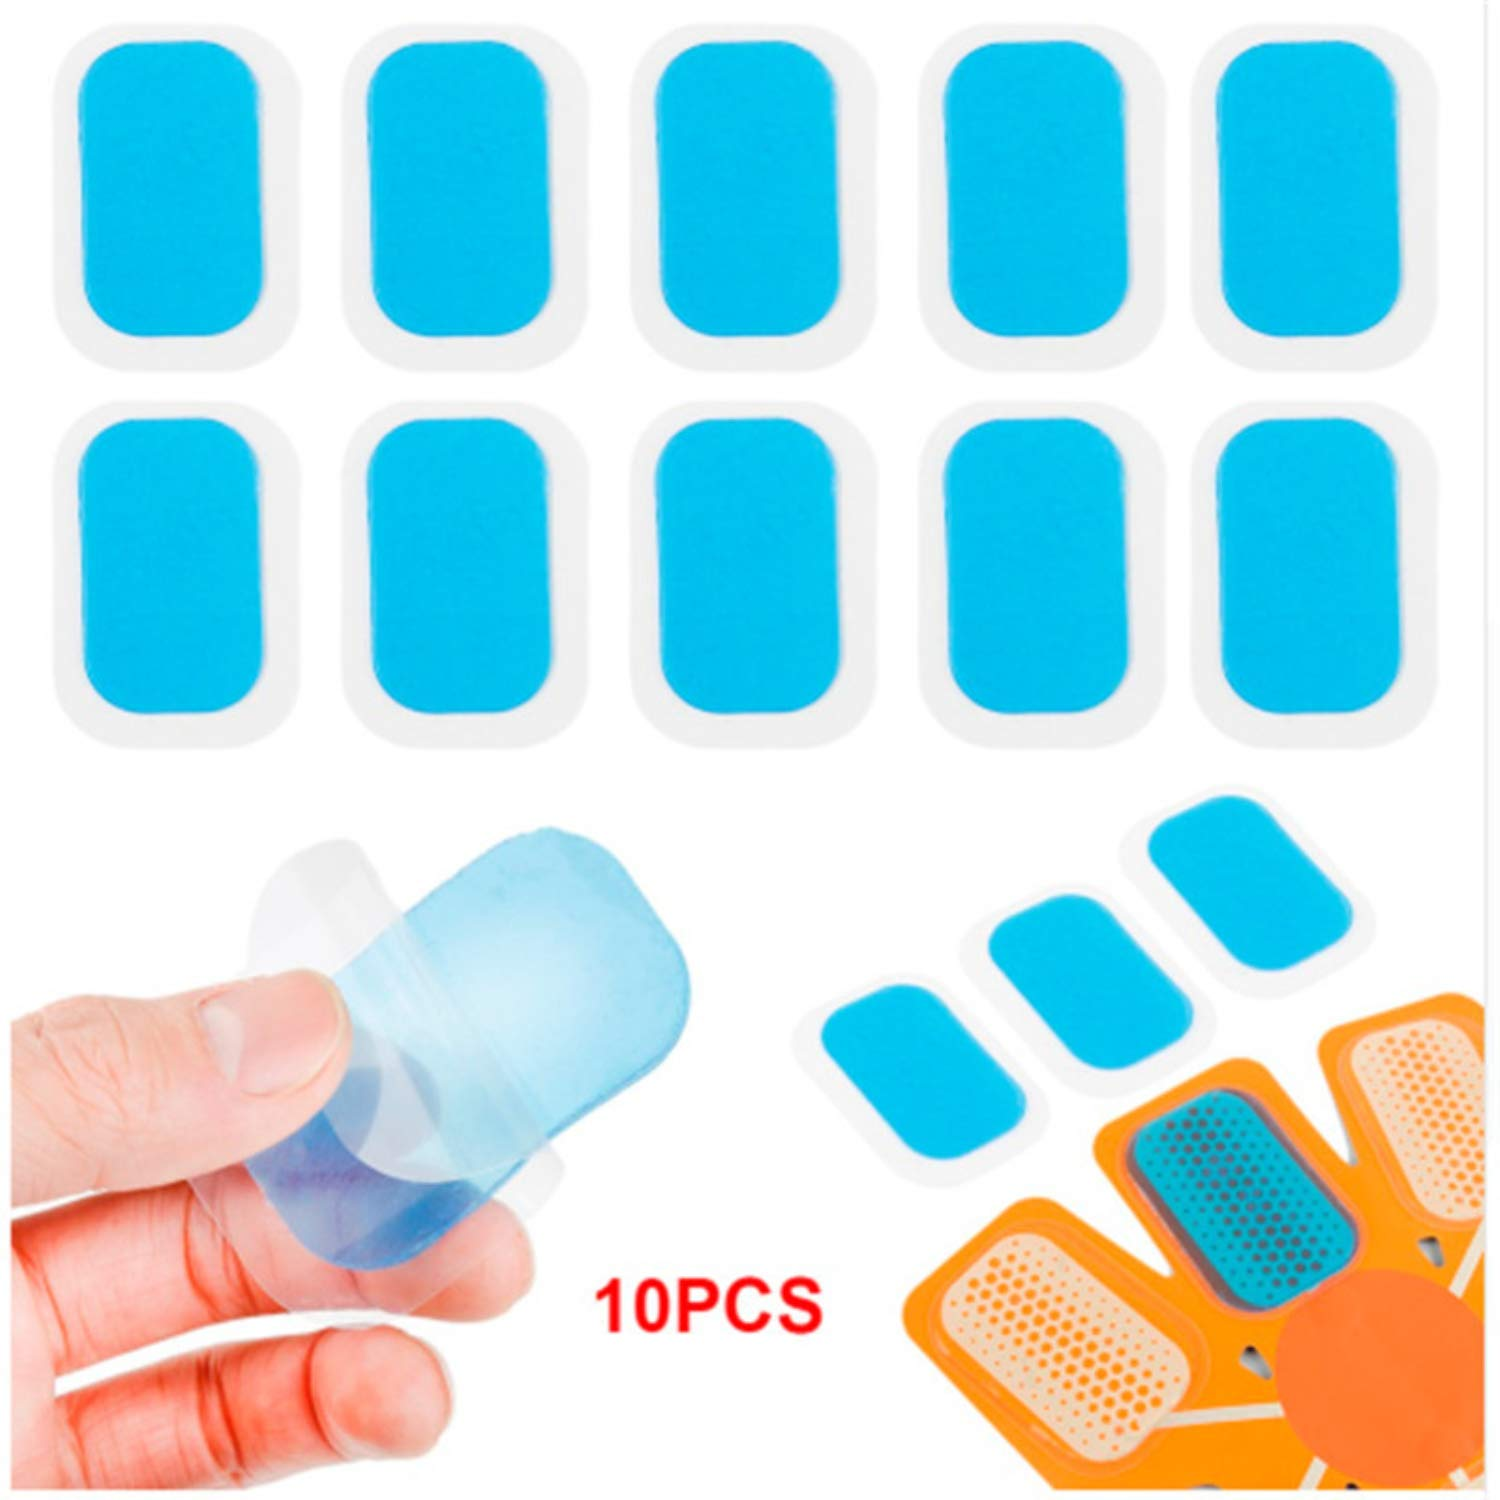 SSTQSAA 10pc Patch Pads Silicone Mat Gel Stickers For Wireless Smart EMS Abdominal Muscles Training Body Massager by SSTQSAA (Image #1)